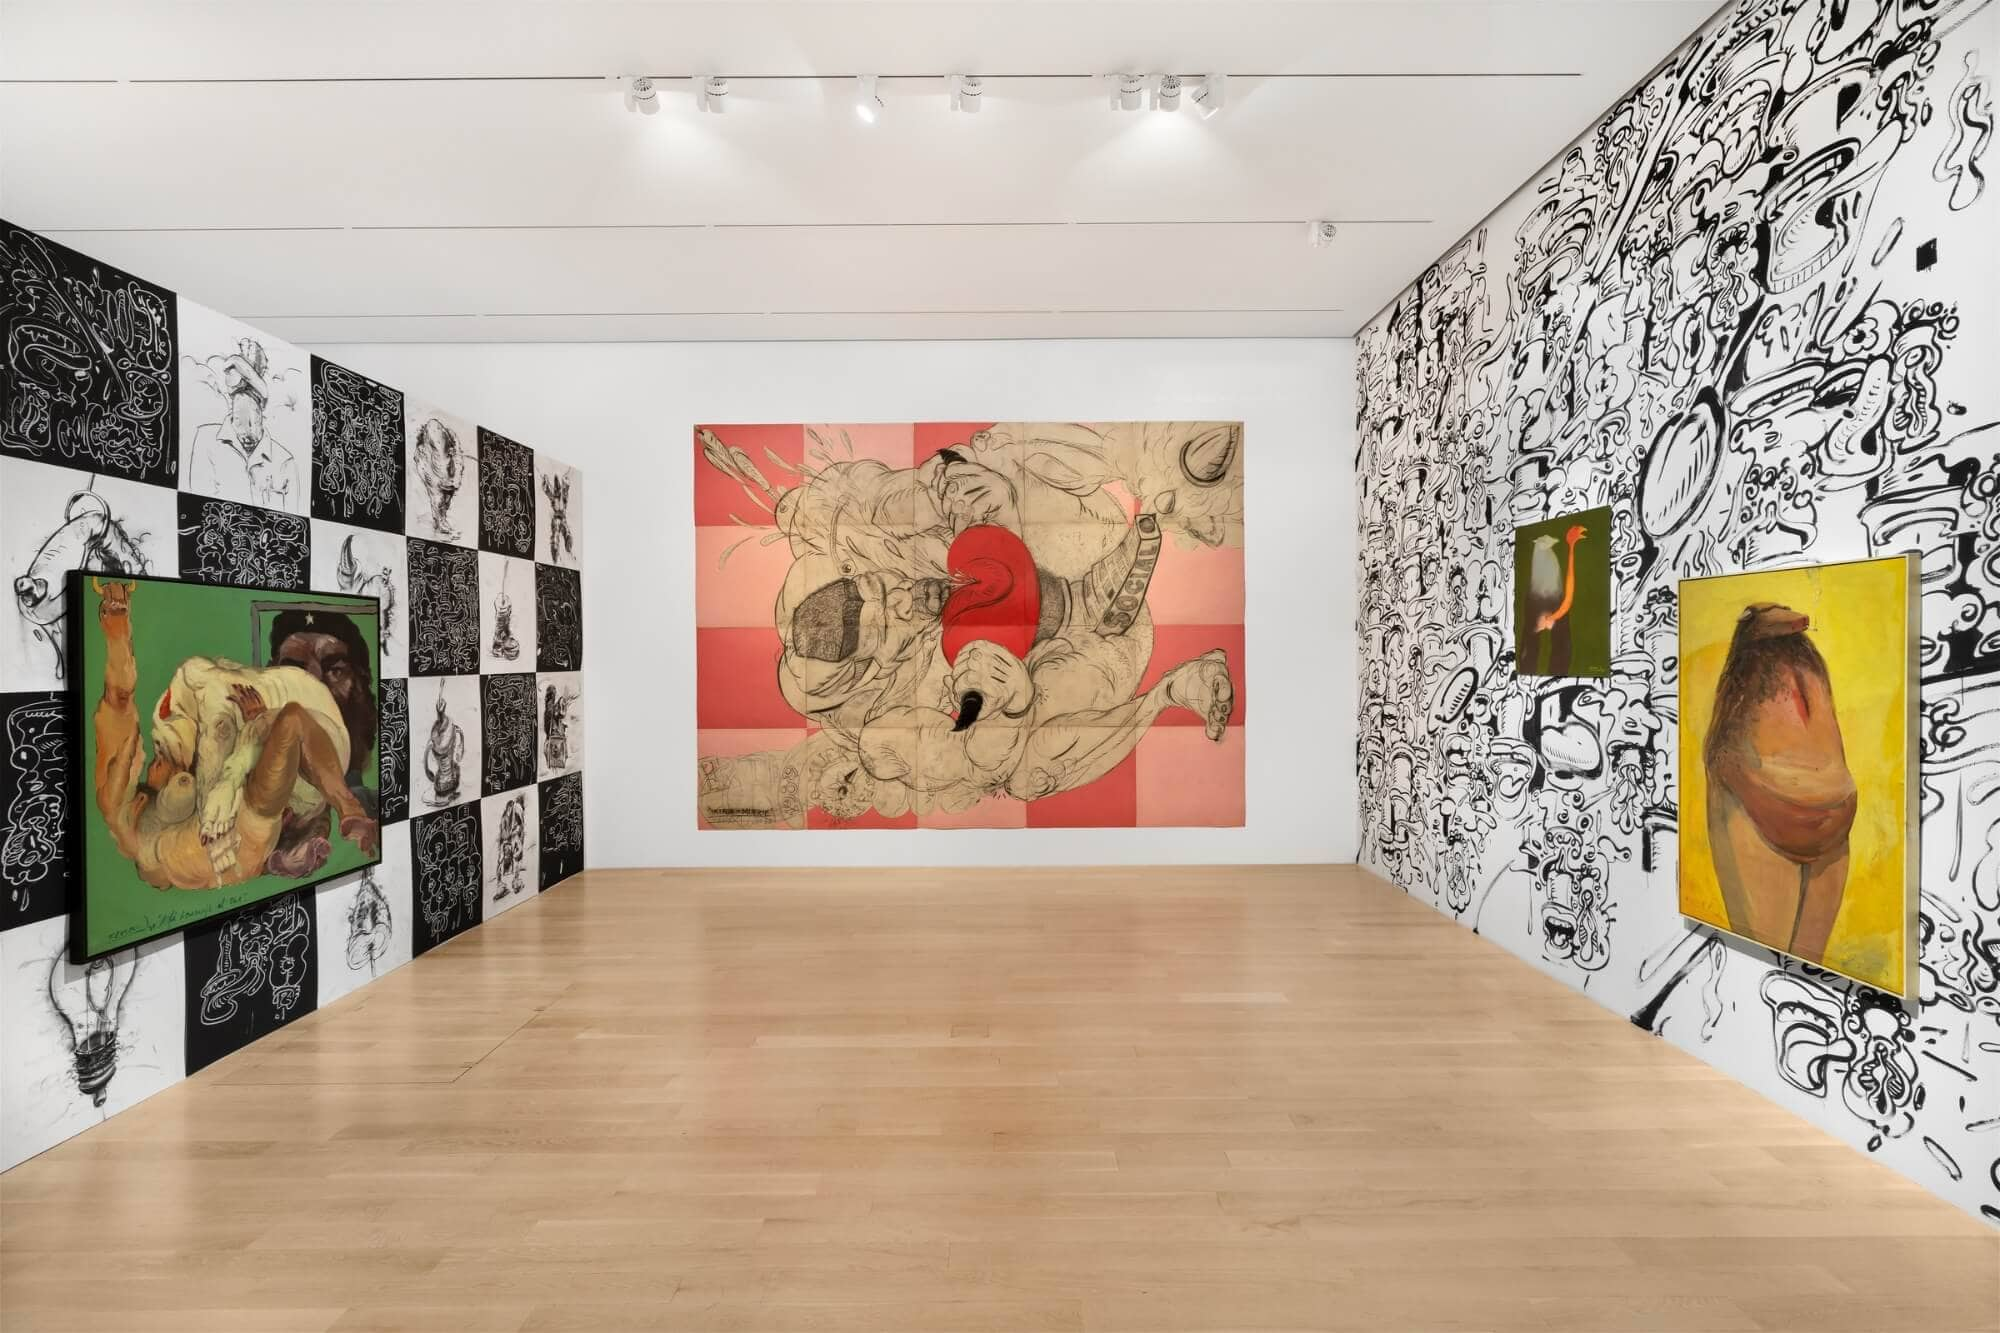 Installation view of Tomás Esson: The GOAT at ICA Miami